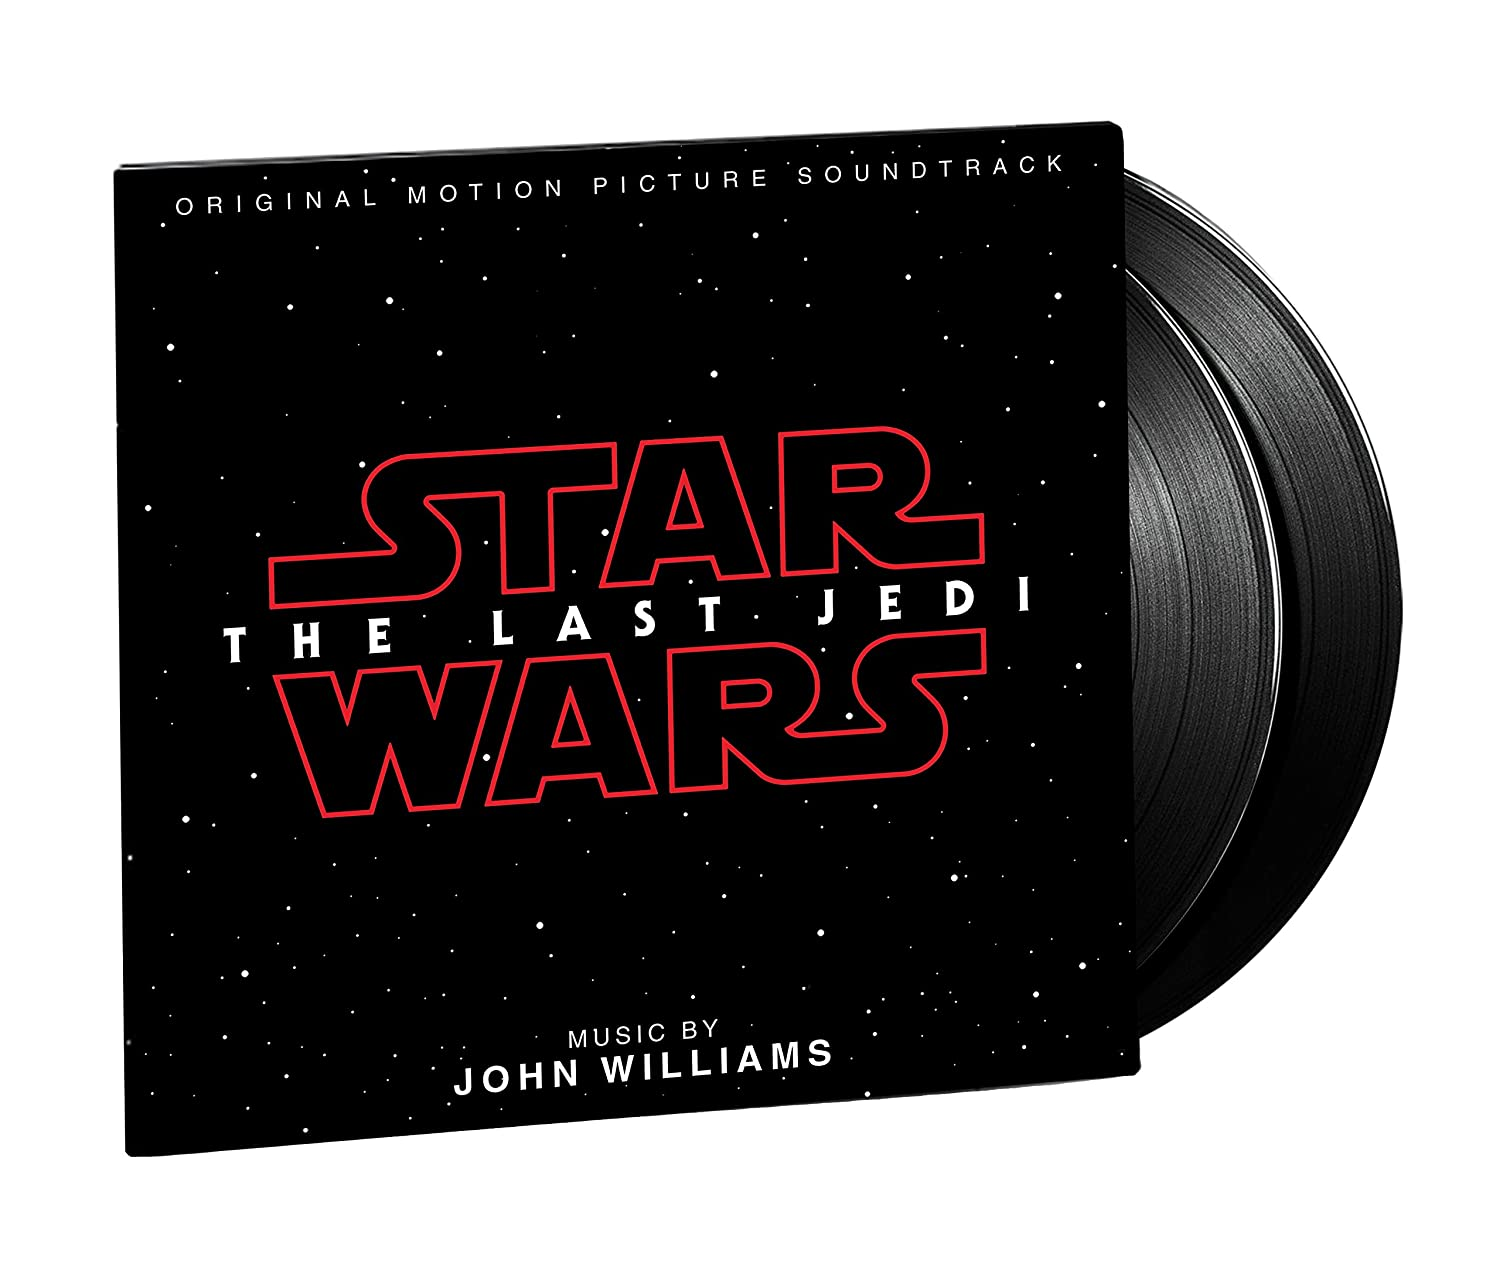 Star Wars: The Last Jedi Original Motion Picture Soundtrack (Record)